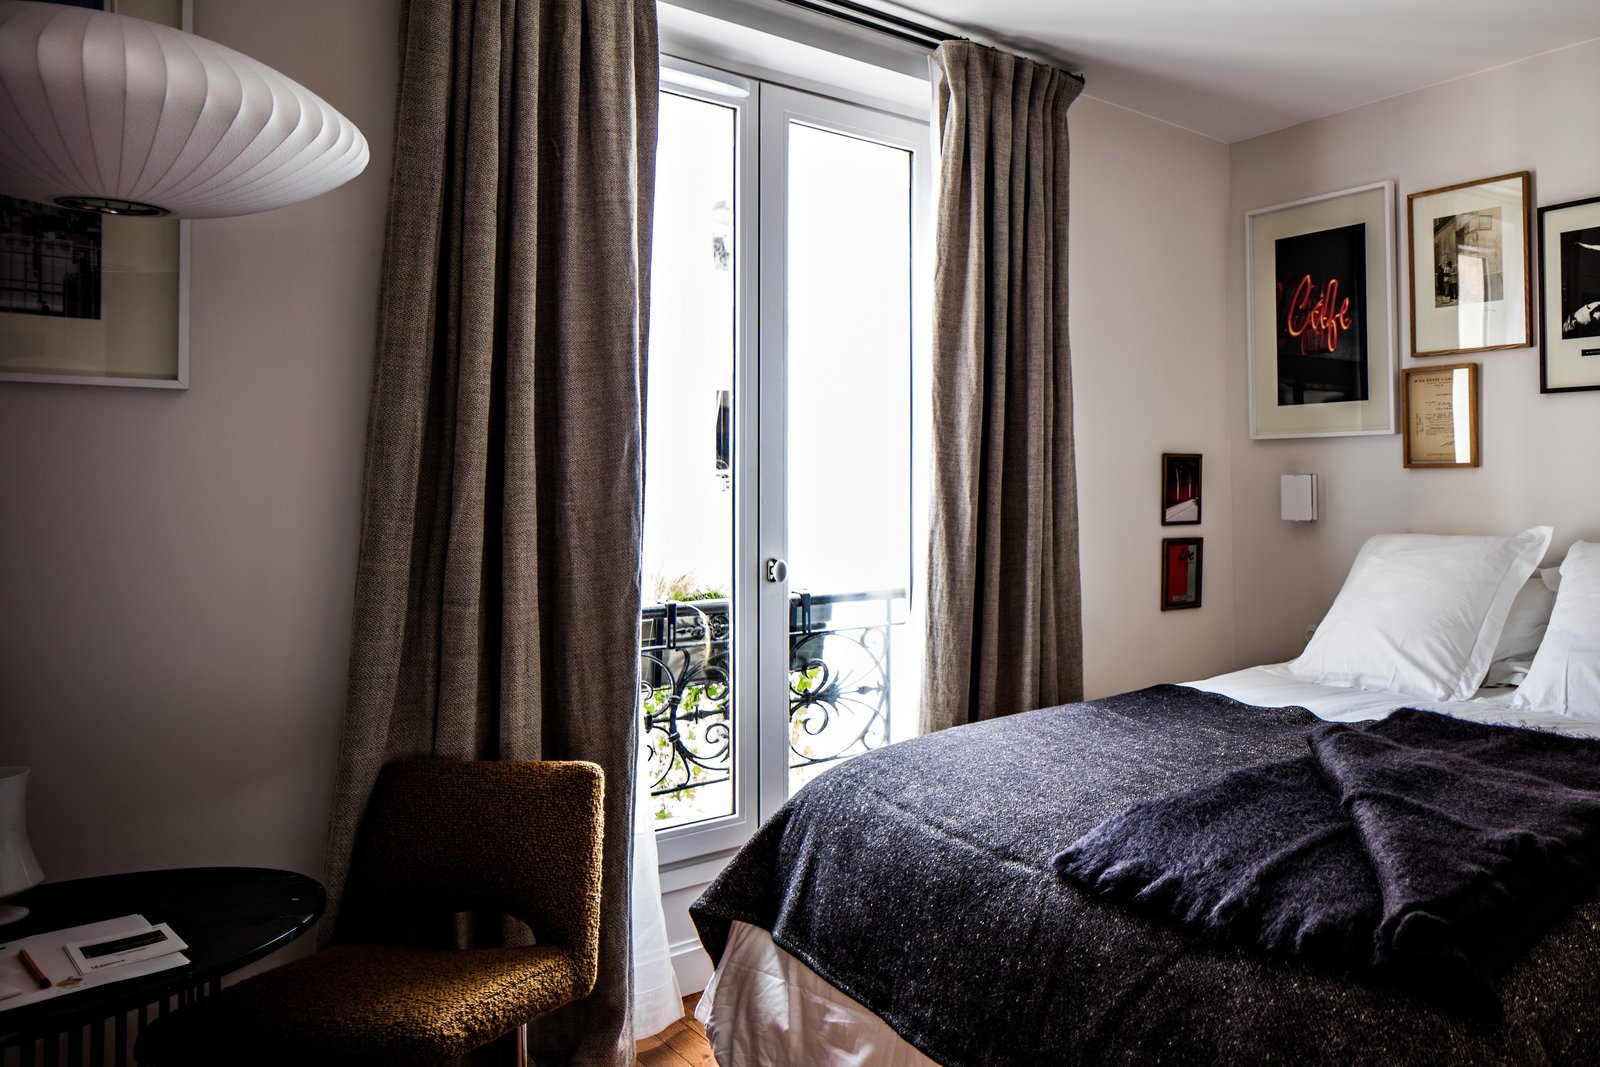 Rooms are simple and comfortable, each with its own personality. Objects in both the public spaces and hotel rooms have been collected and curated by local artisans, designers, and shopkeepers.  Photo 4 of 8 in Collaboration Reigns  Over This Parisian Neighborhood Hotel